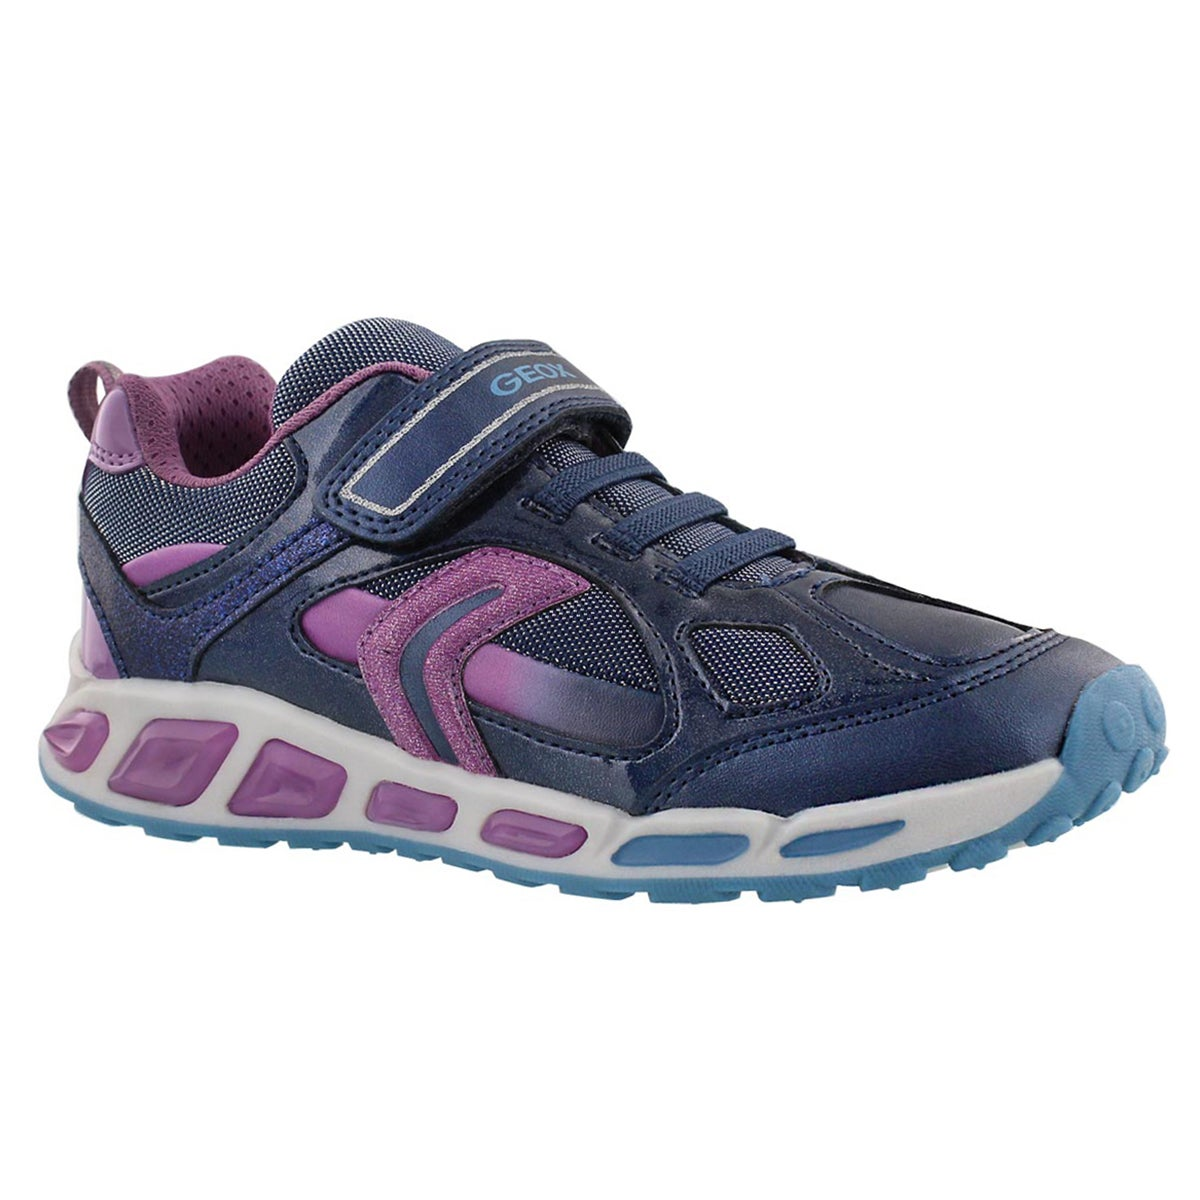 Grls Shuttle navy/lilac running shoe